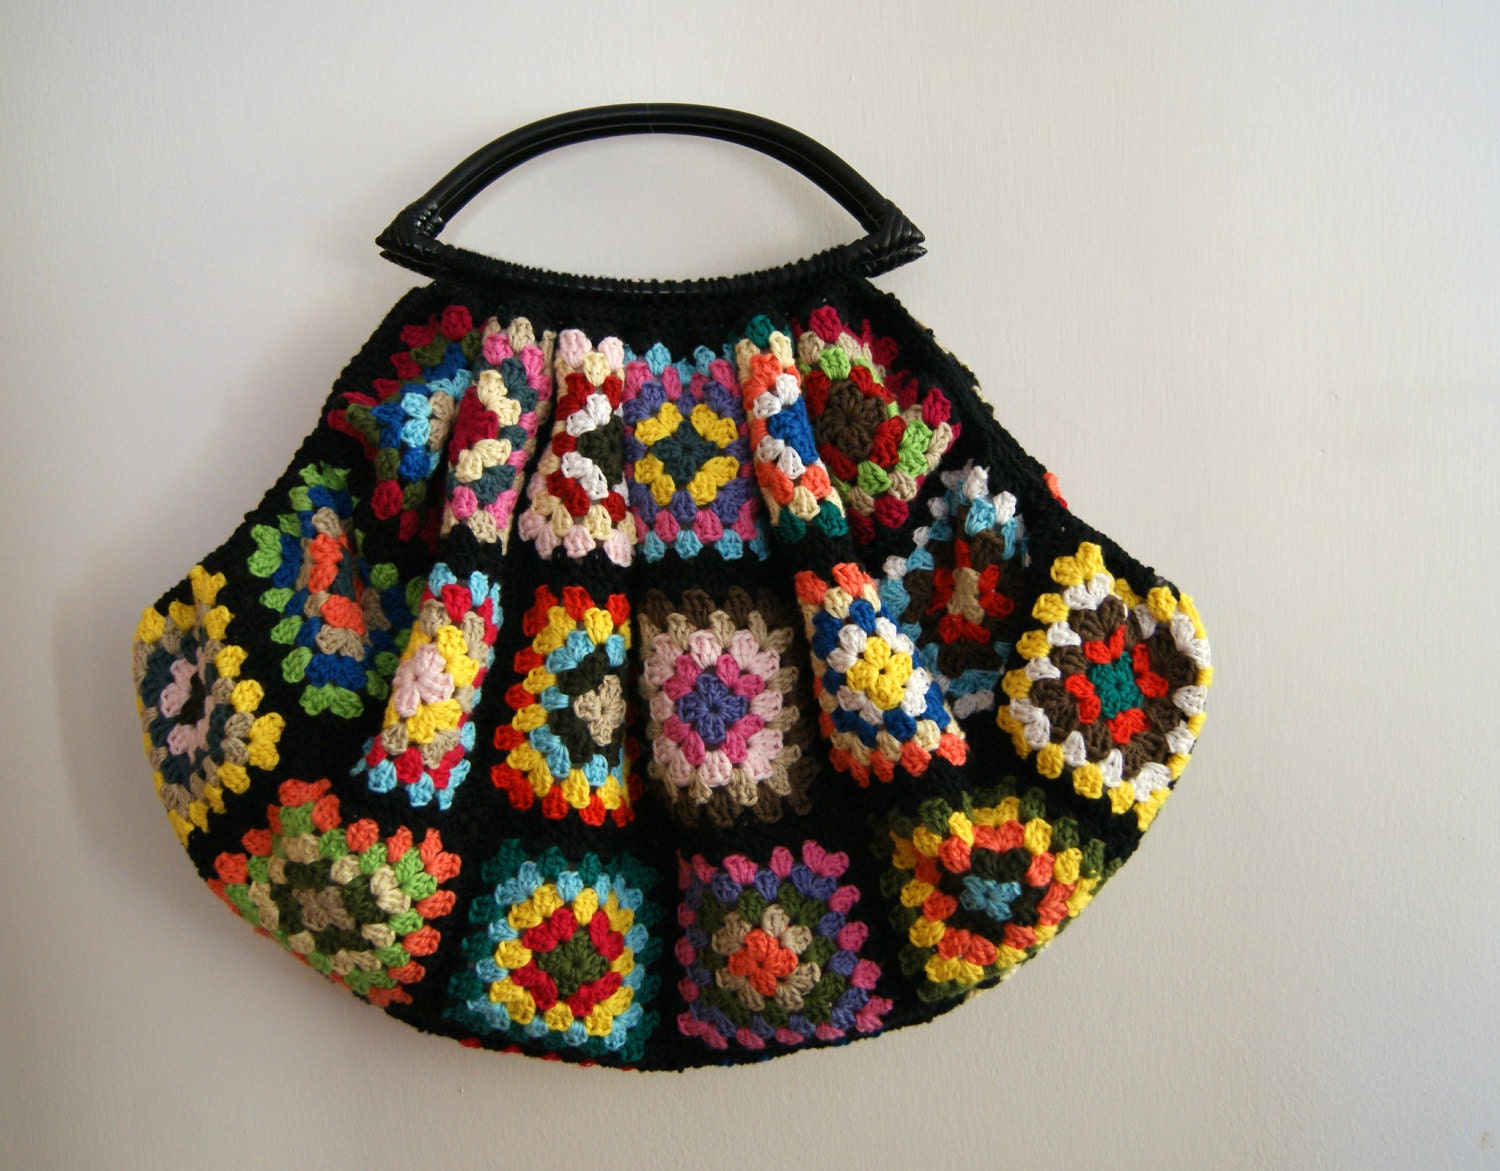 Black Crochet granny square bag by knittingcate on Etsy